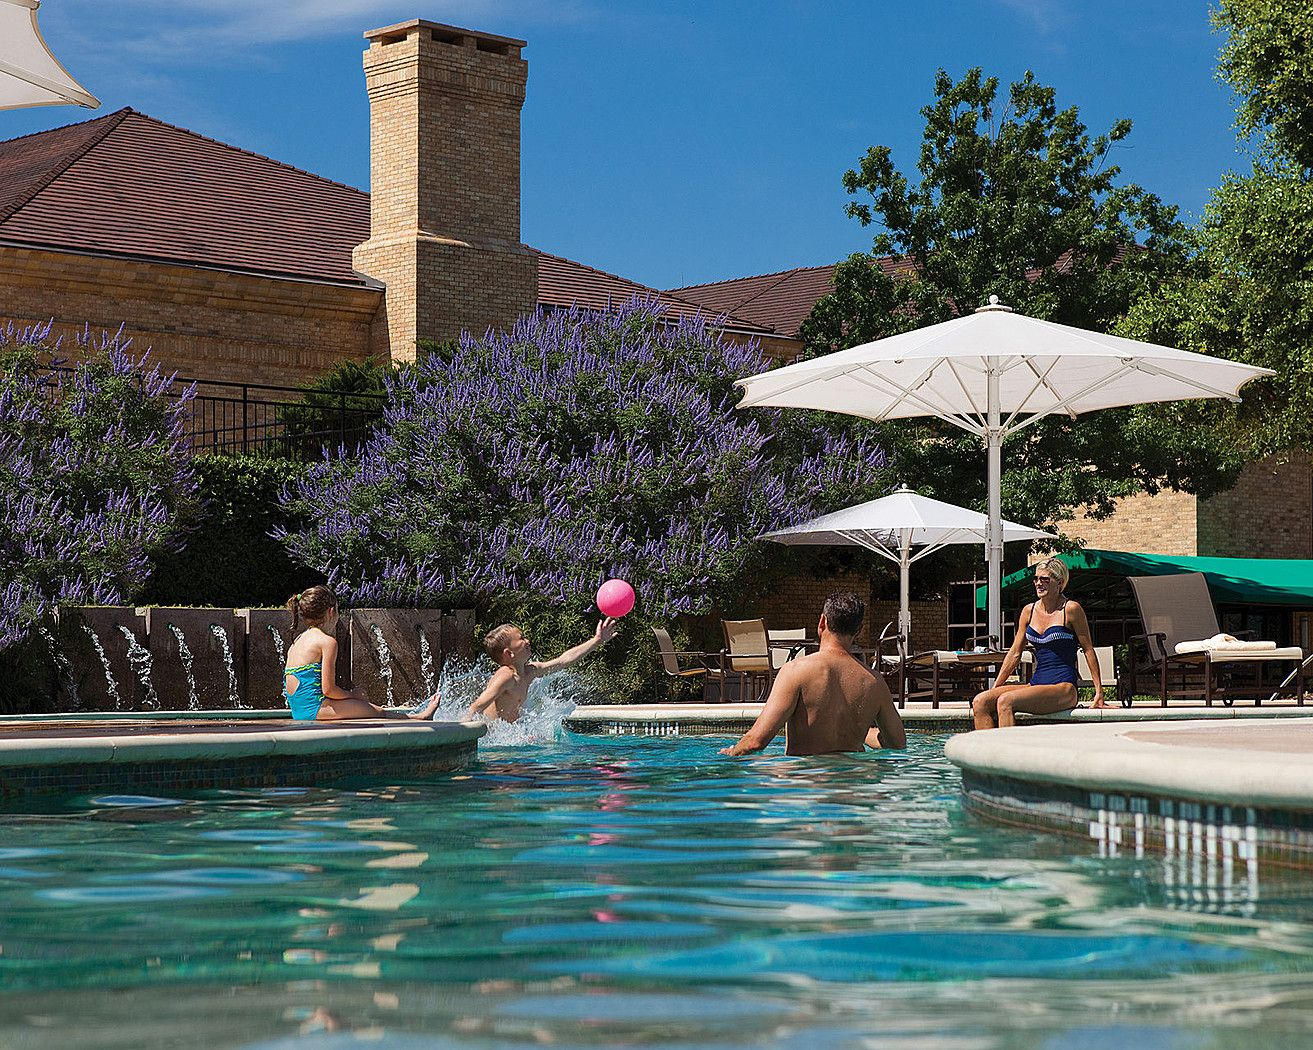 Open From Memorial Day Through Labor Day The Family Pool Is The Place To Be During The Summer Months Kids Best Hotels In Dallas Summer Staycation Family Pool